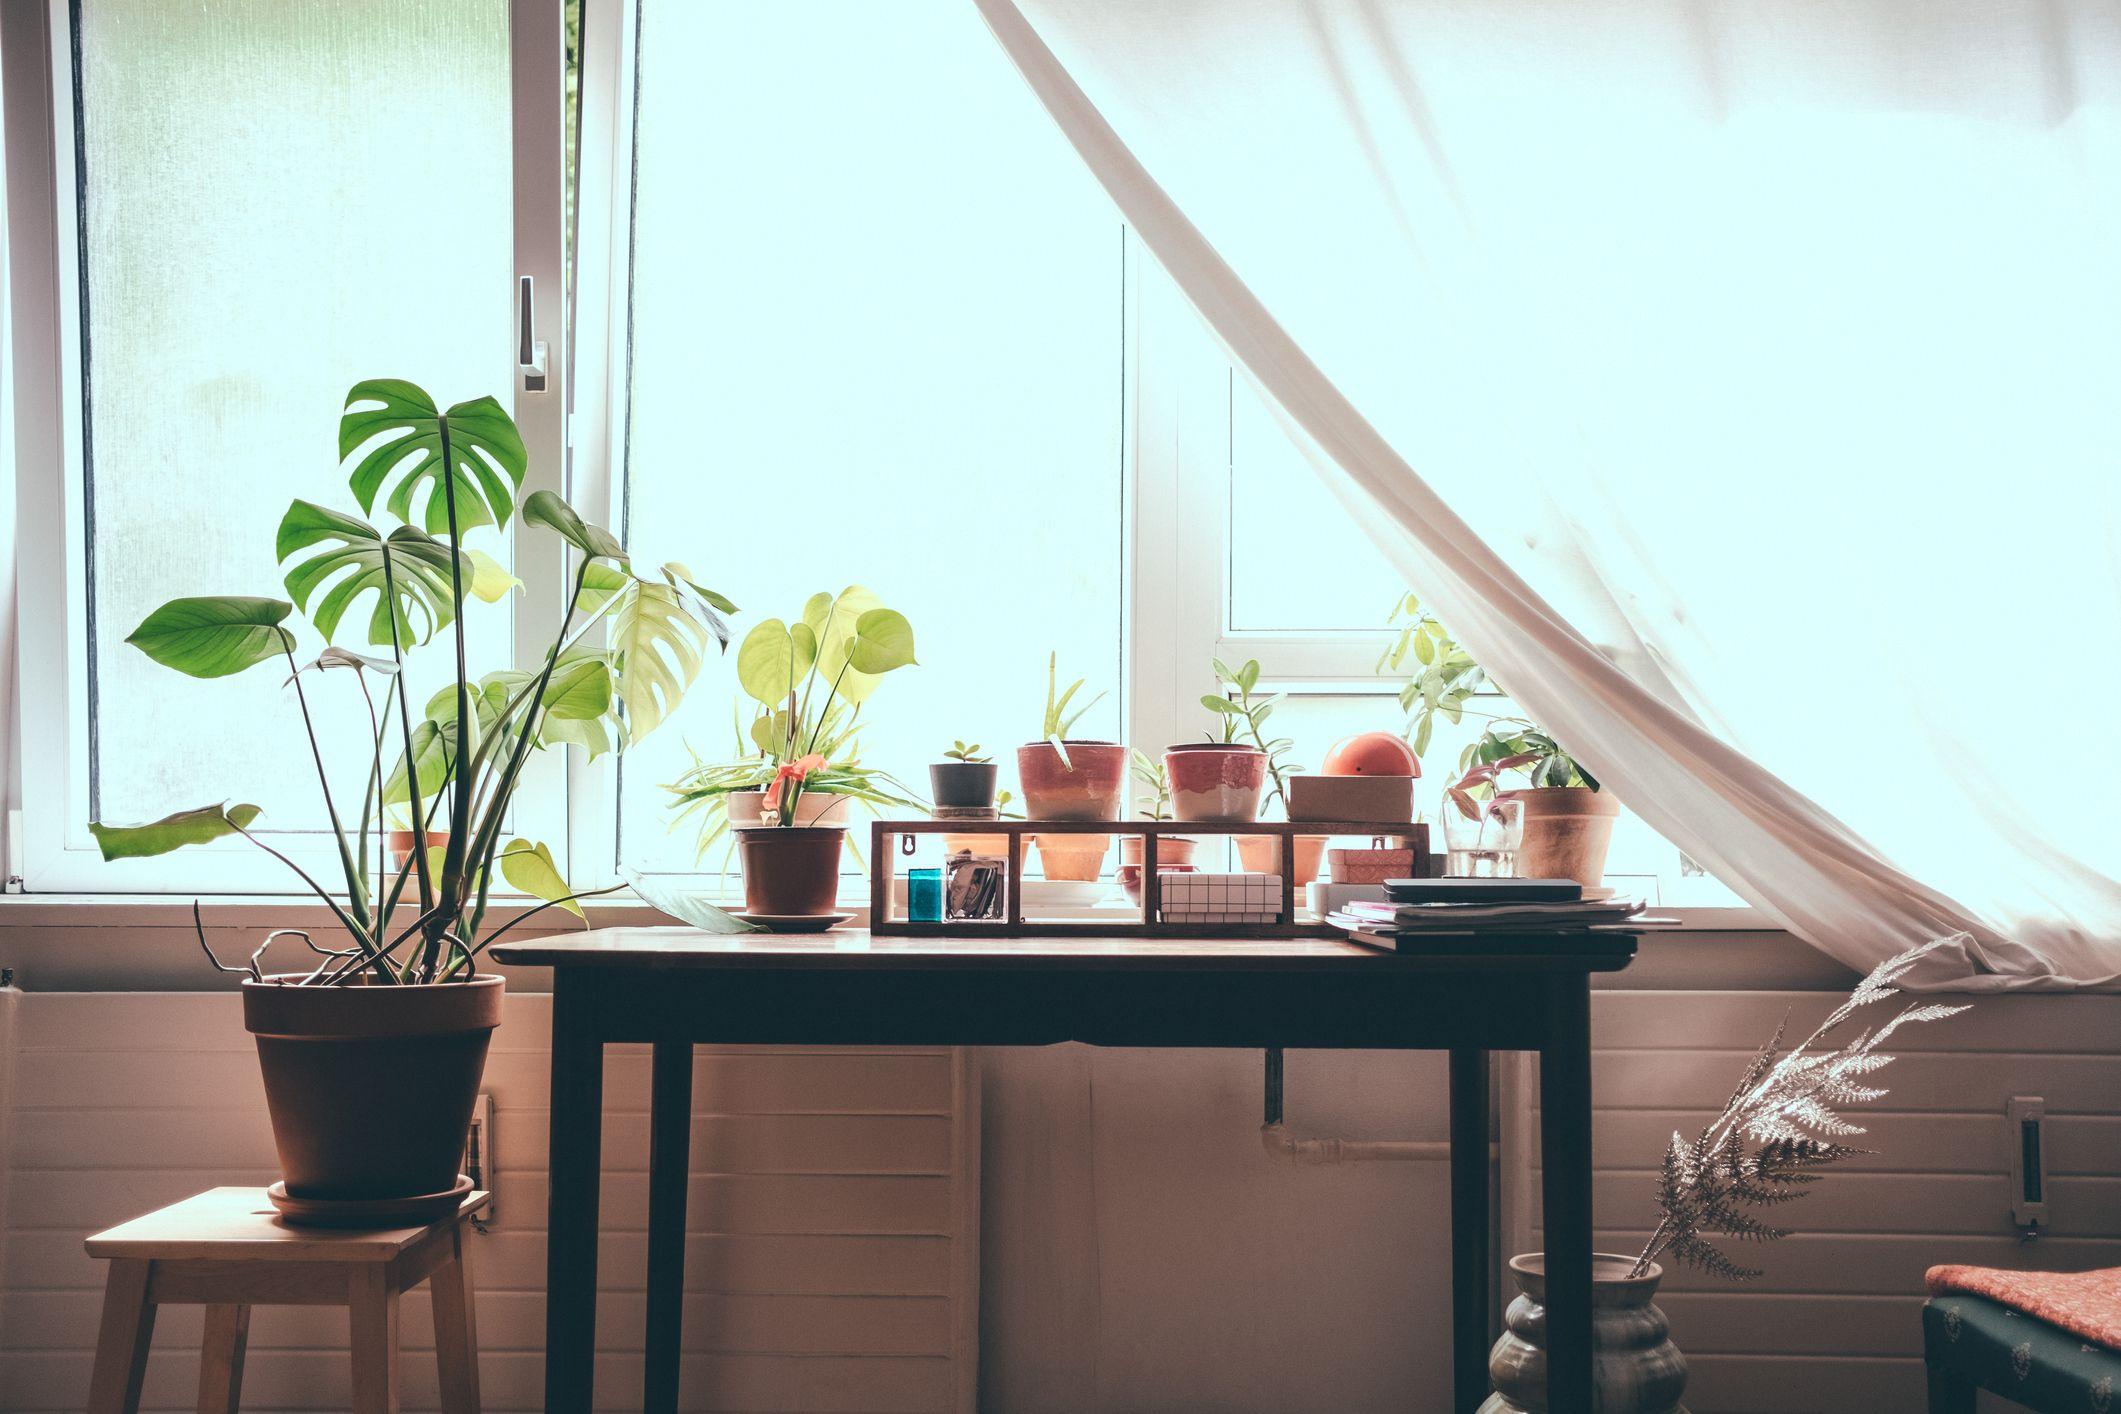 These are the best indoor plants to buy if you keep killing yours